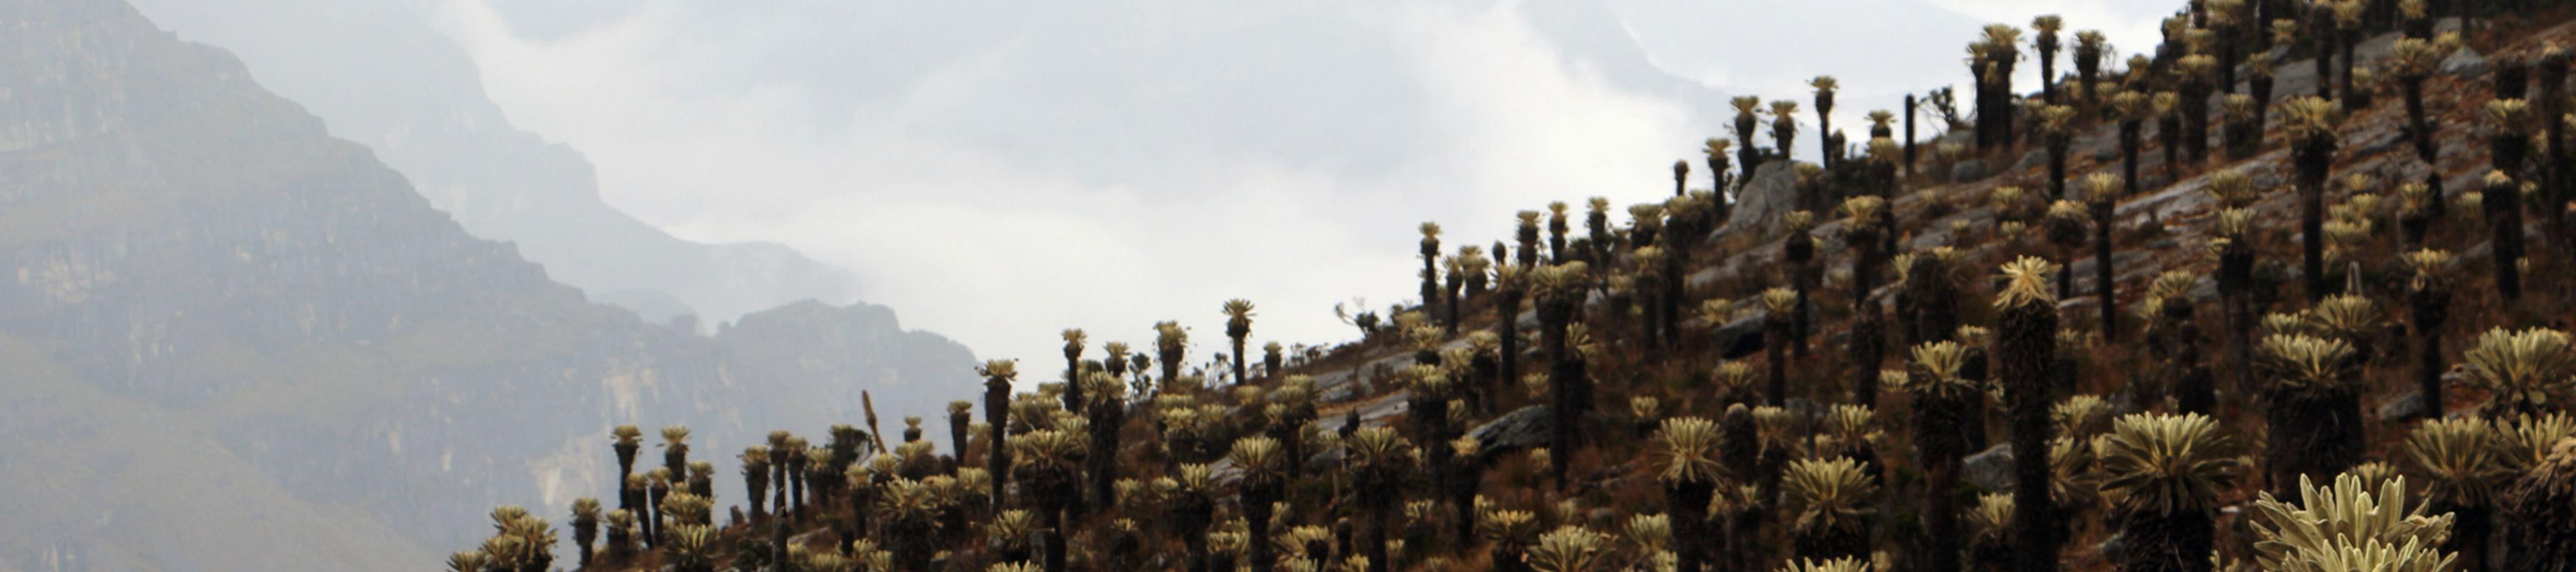 Spiky plants on a mountain with clouds around